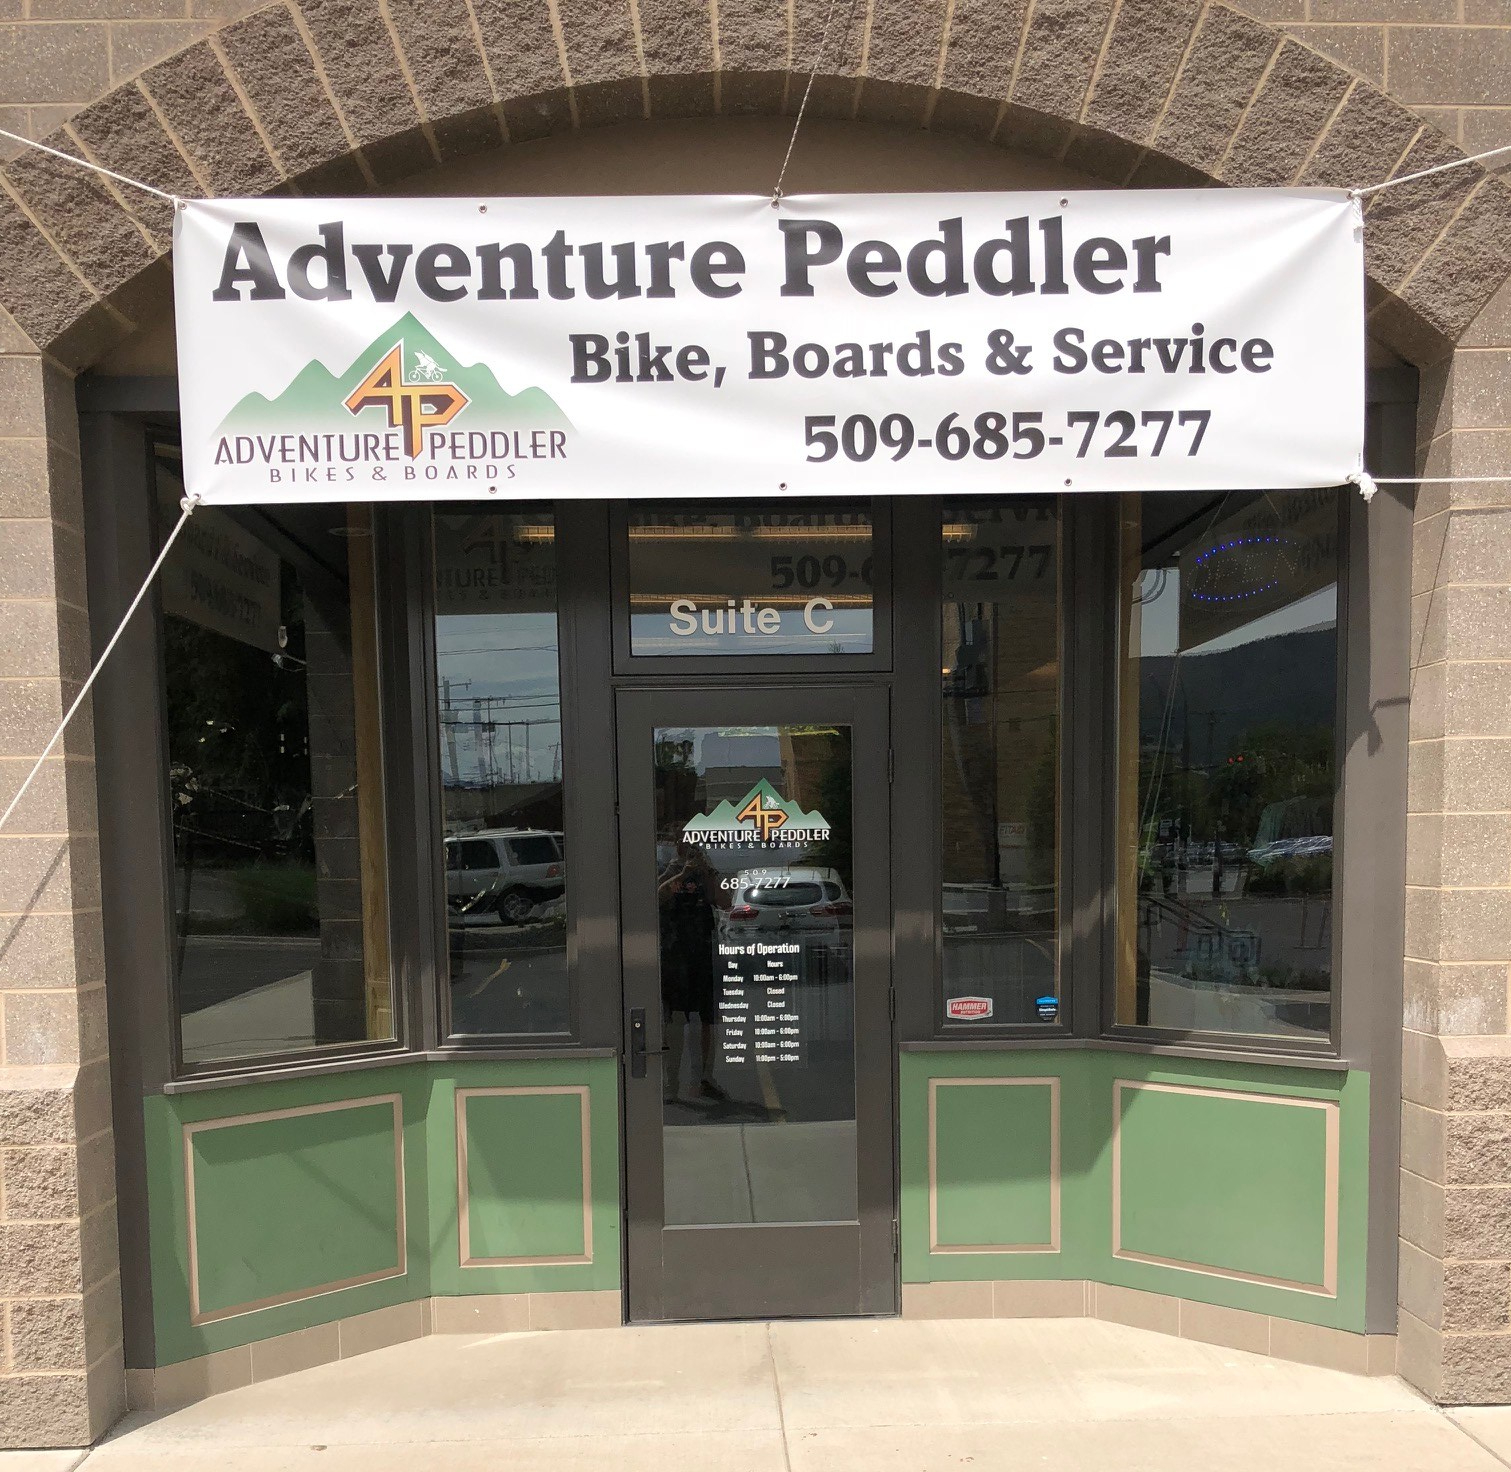 The Adventure Peddler Your Source For All Things Bike In The